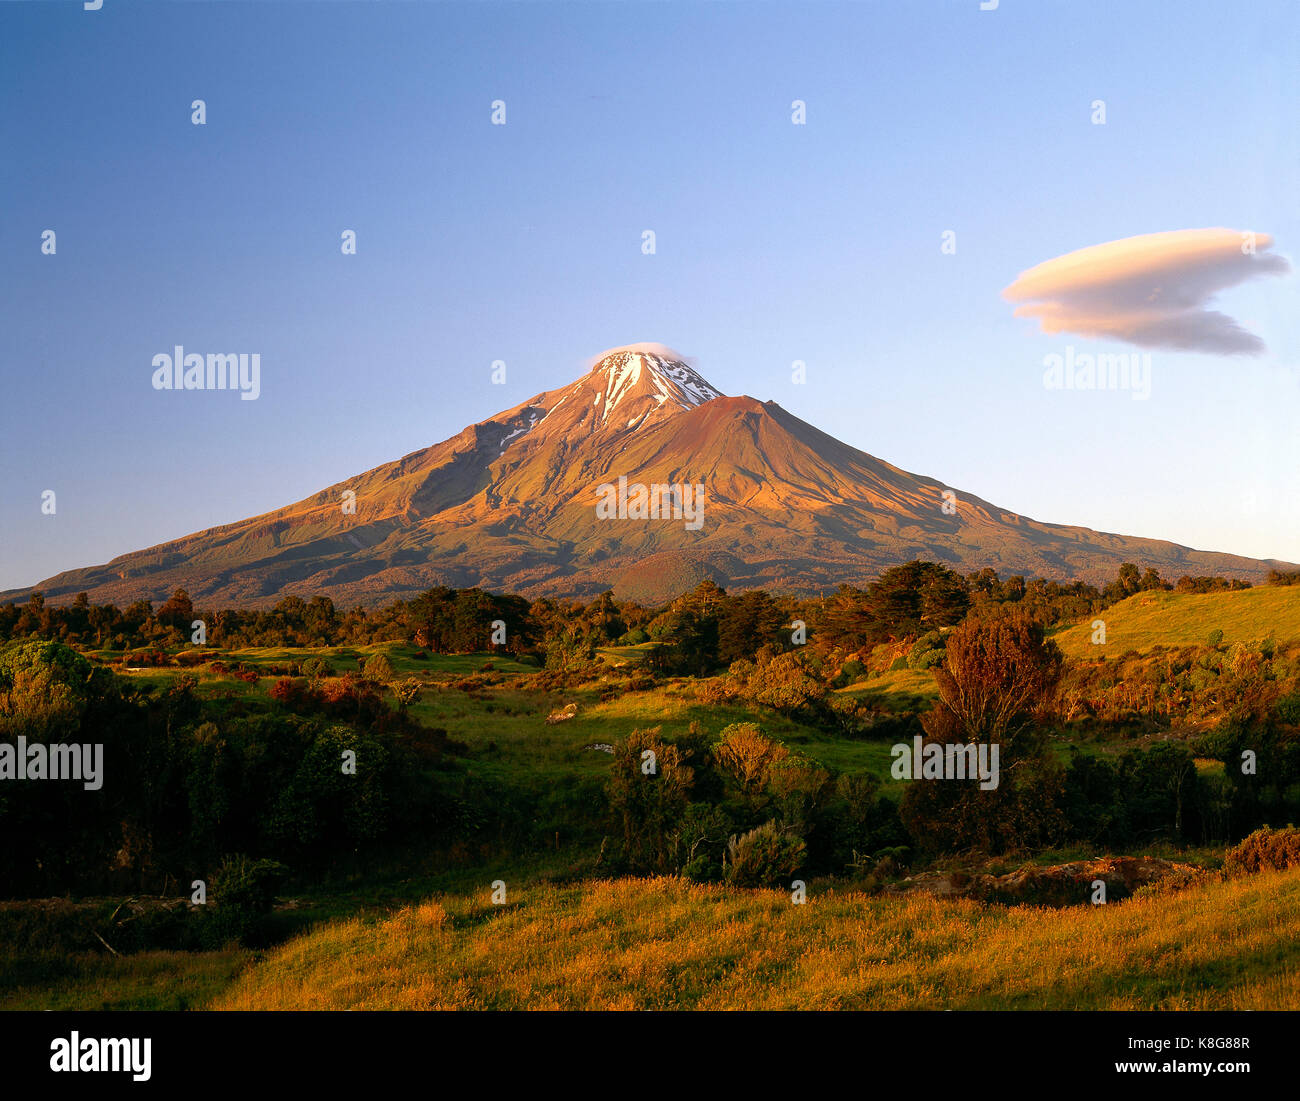 New Zealand. North Island. Mount Taranaki. - Stock Image